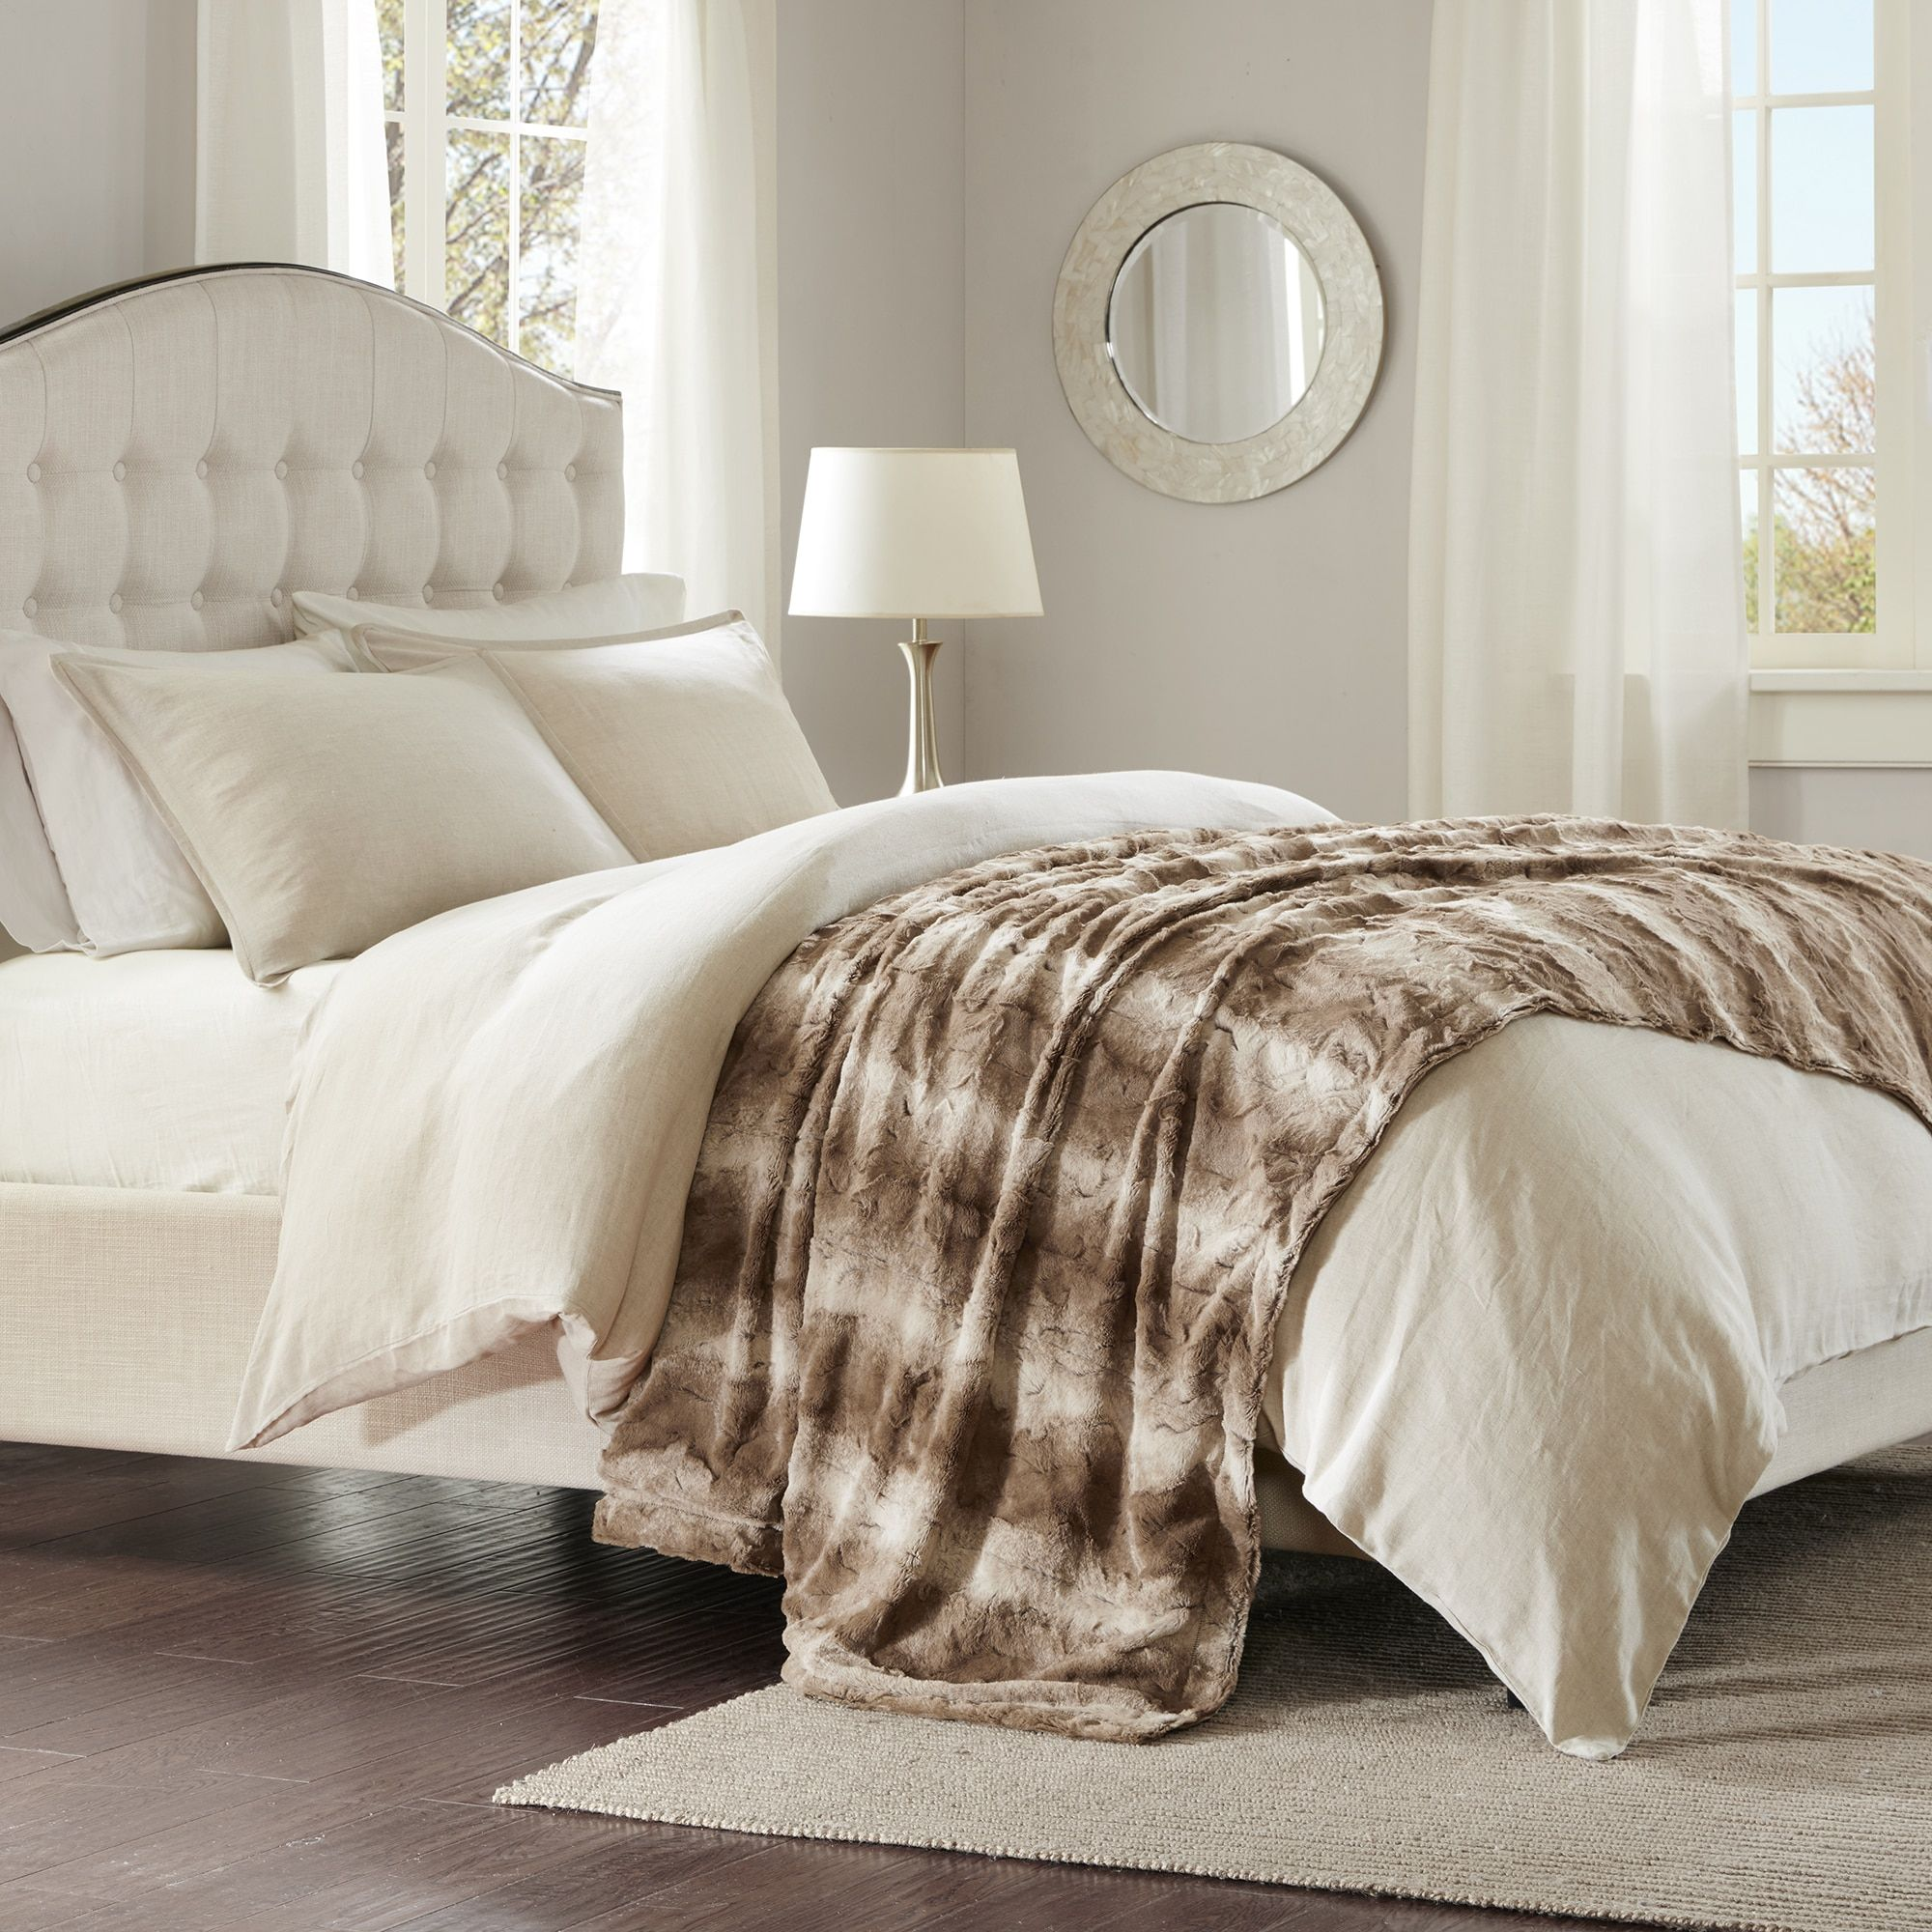 designs faux tibet down ivory blanket and comforter blue with fur comforters fox bedspread colored throw bedroom fringe